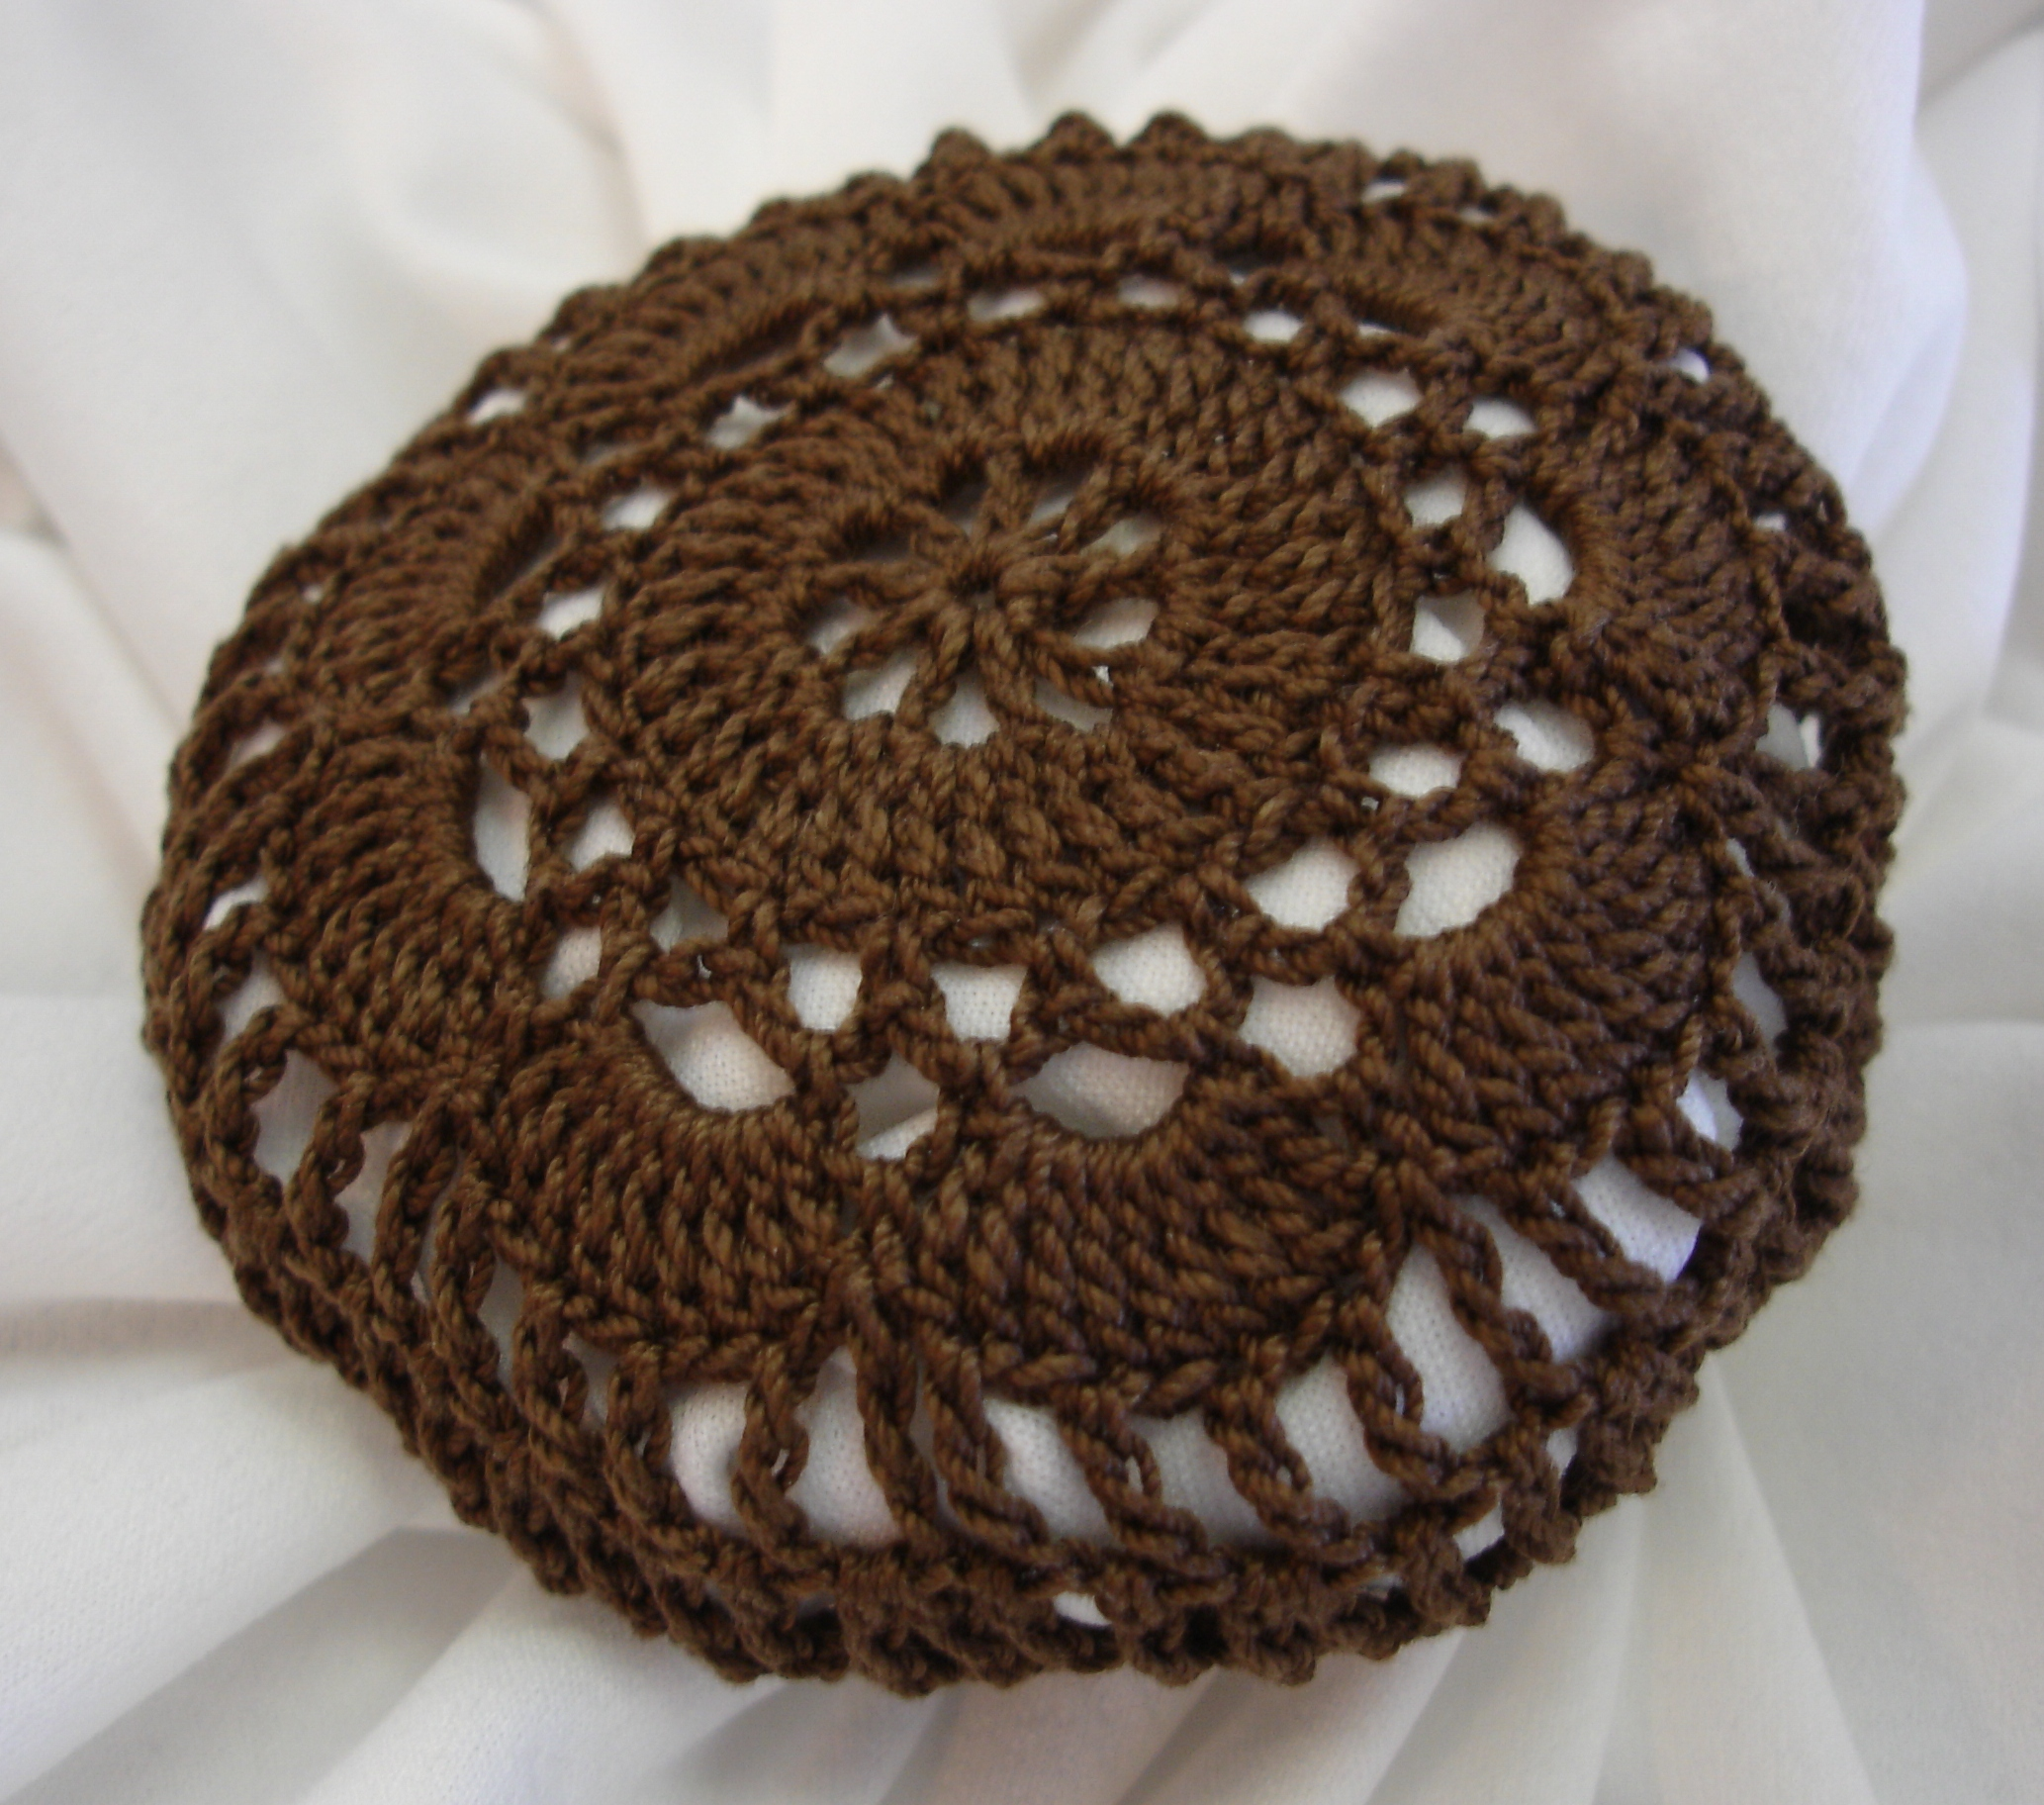 Crochet Hair Net : Set of 3 Crocheted Hair Net / Bun Covers Flower Style merrydeals4u